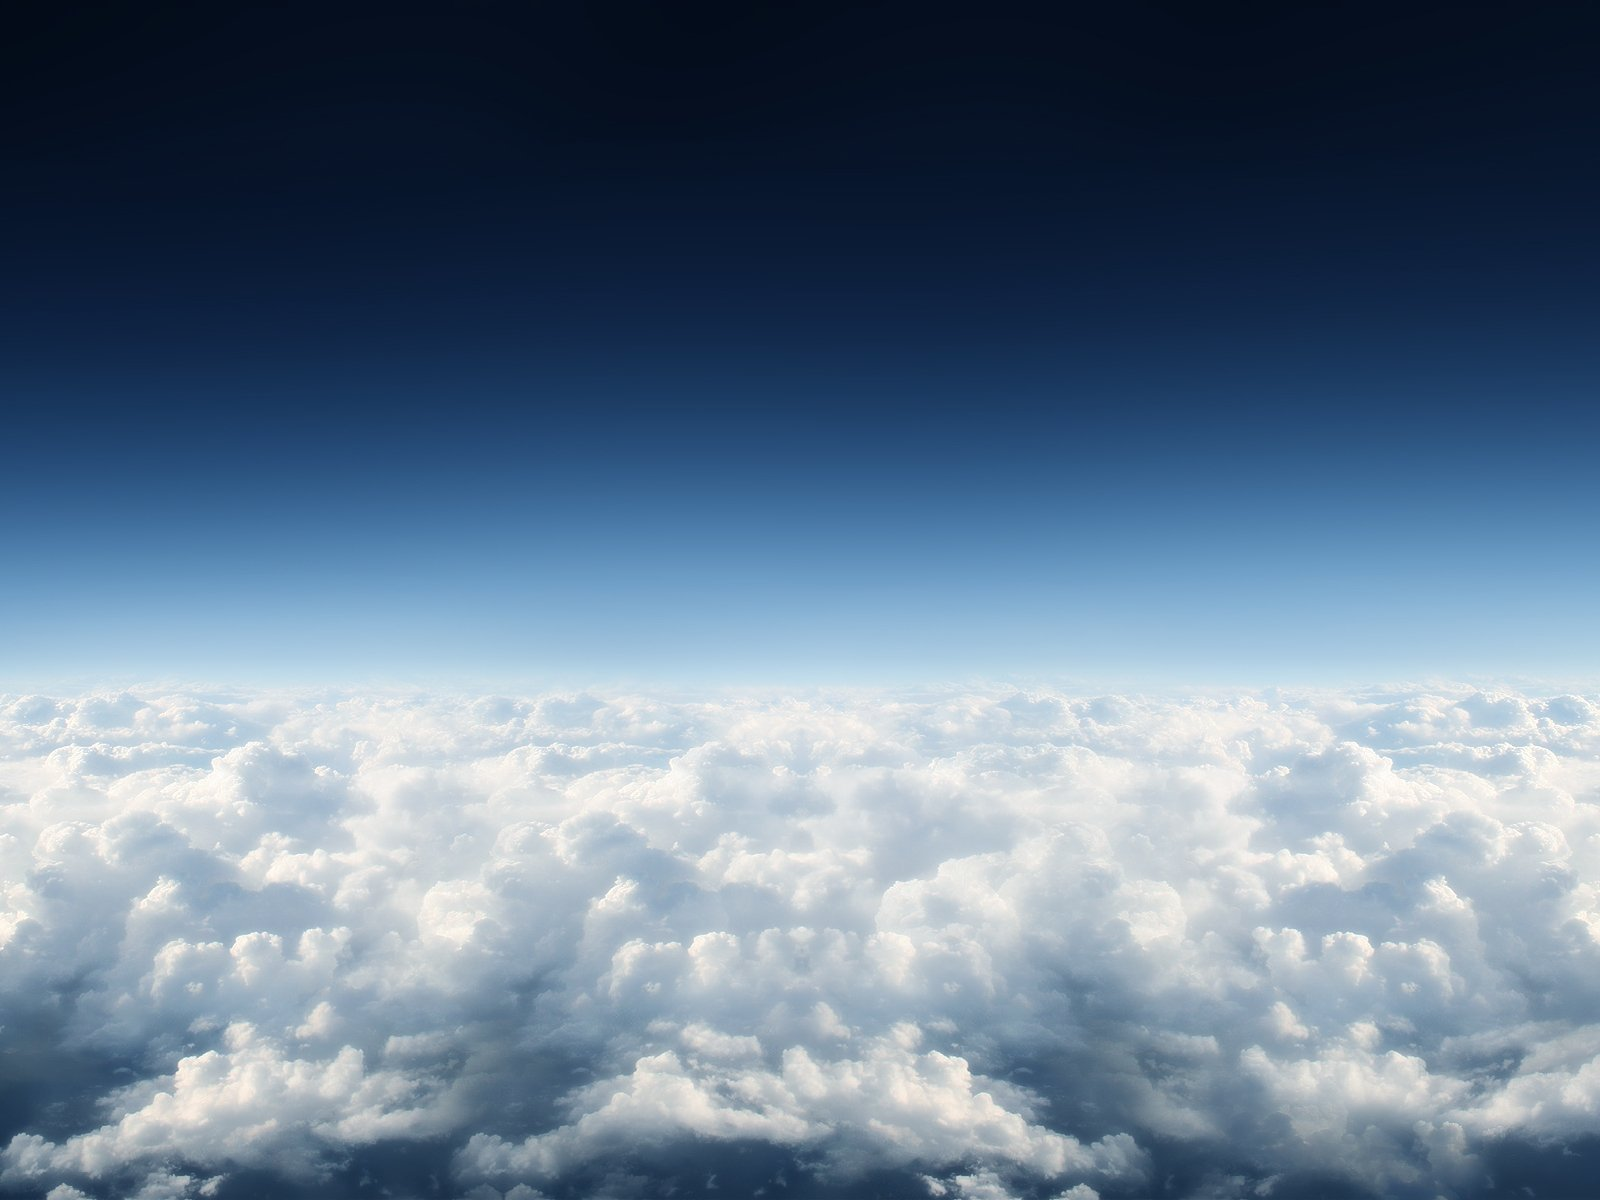 539 Sky HD Wallpapers | Backgrounds - Wallpaper Abyss